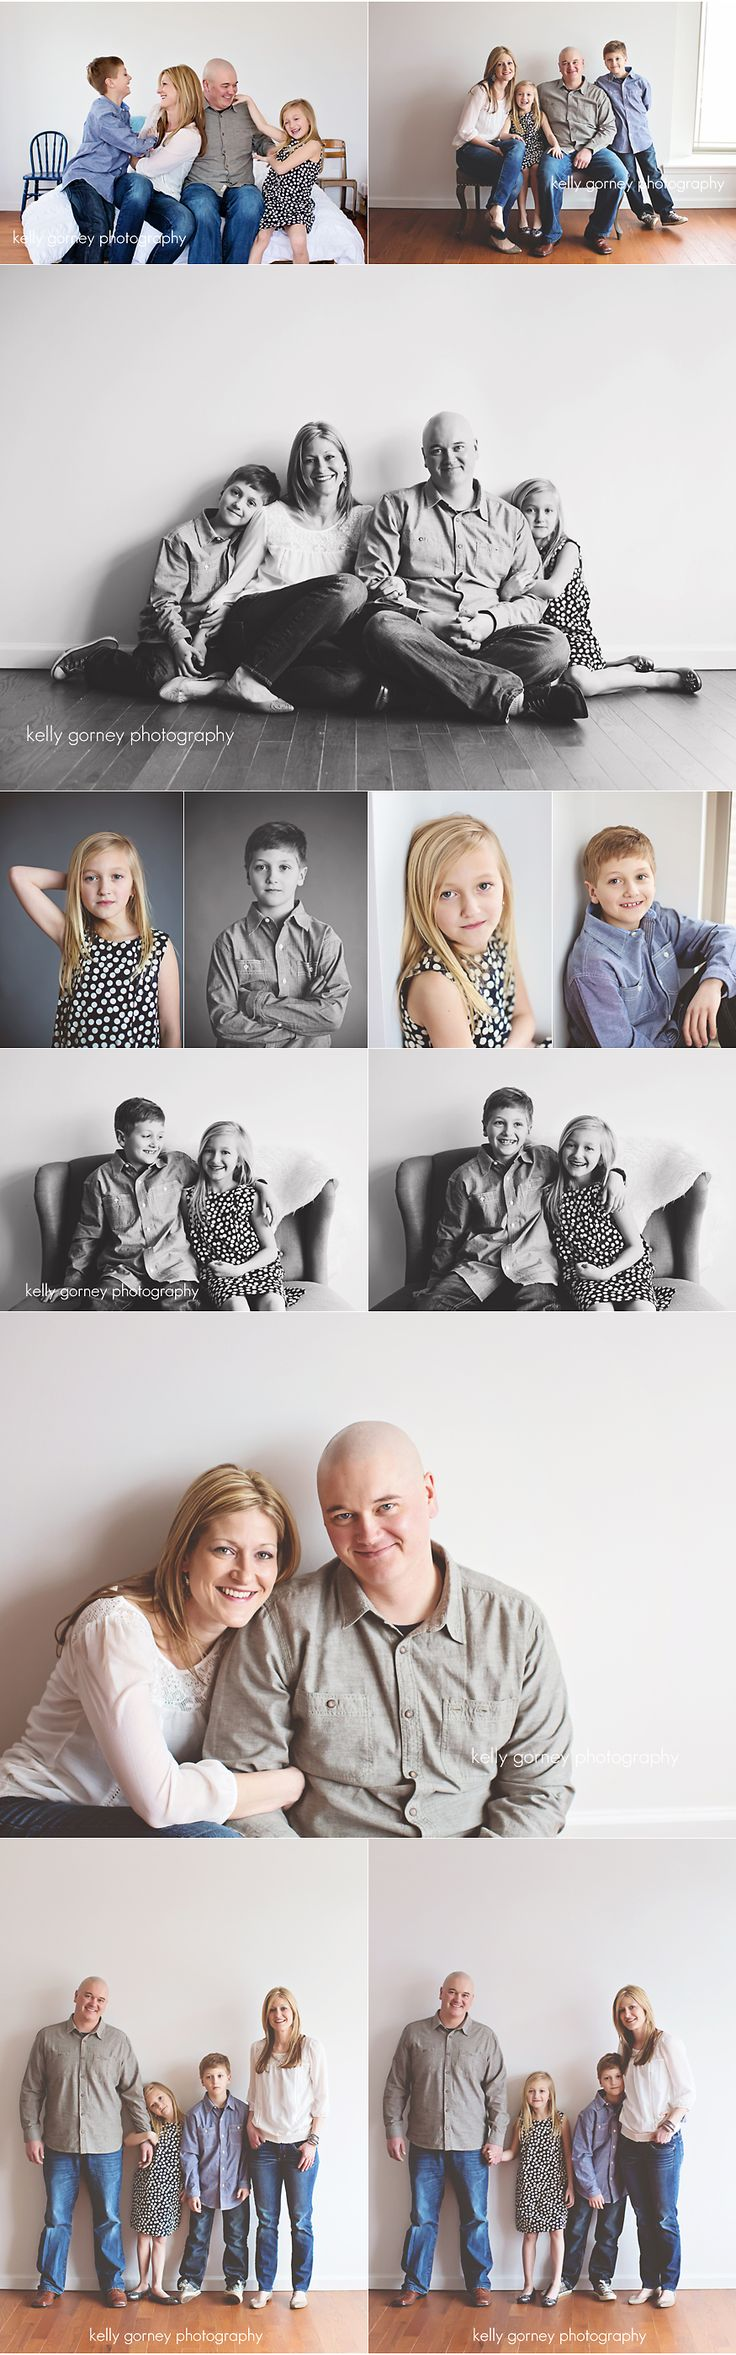 Studio Family Session | Kelly Gorney Photography